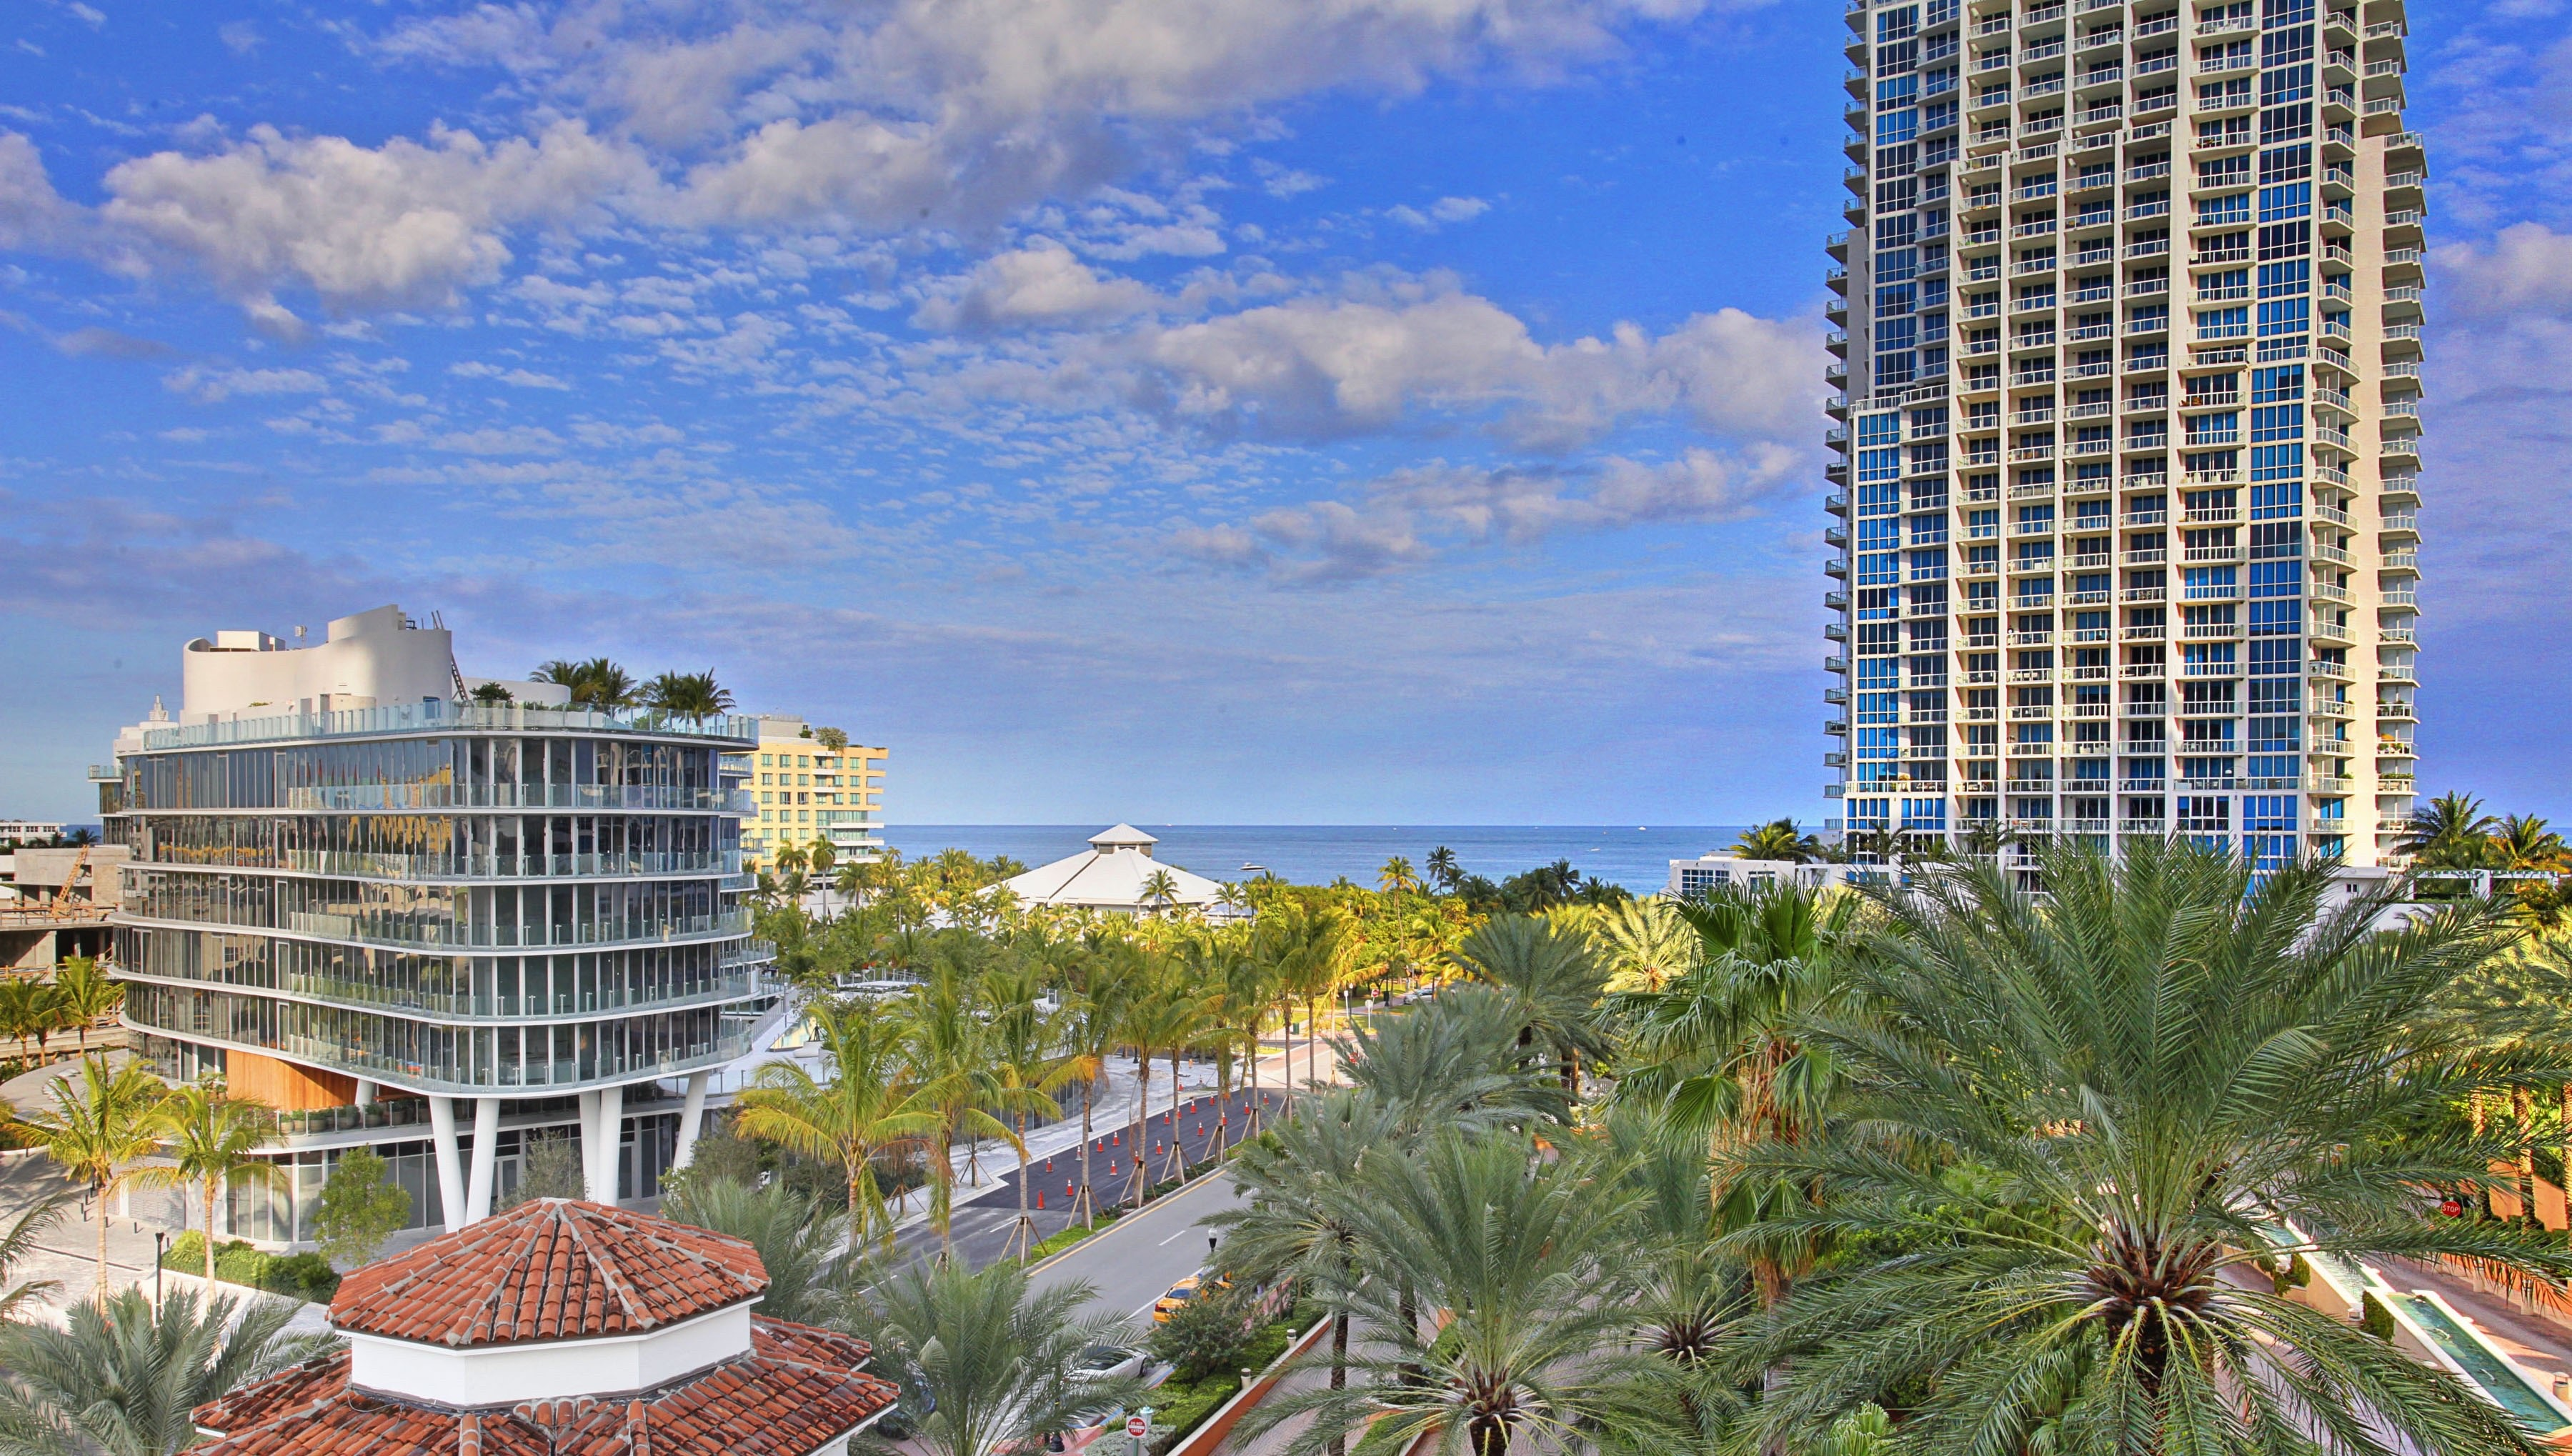 Condominium for Sale at 300 S Pointe Dr 705 300 S Pointe Dr #705 Miami Beach, Florida 33139 United States